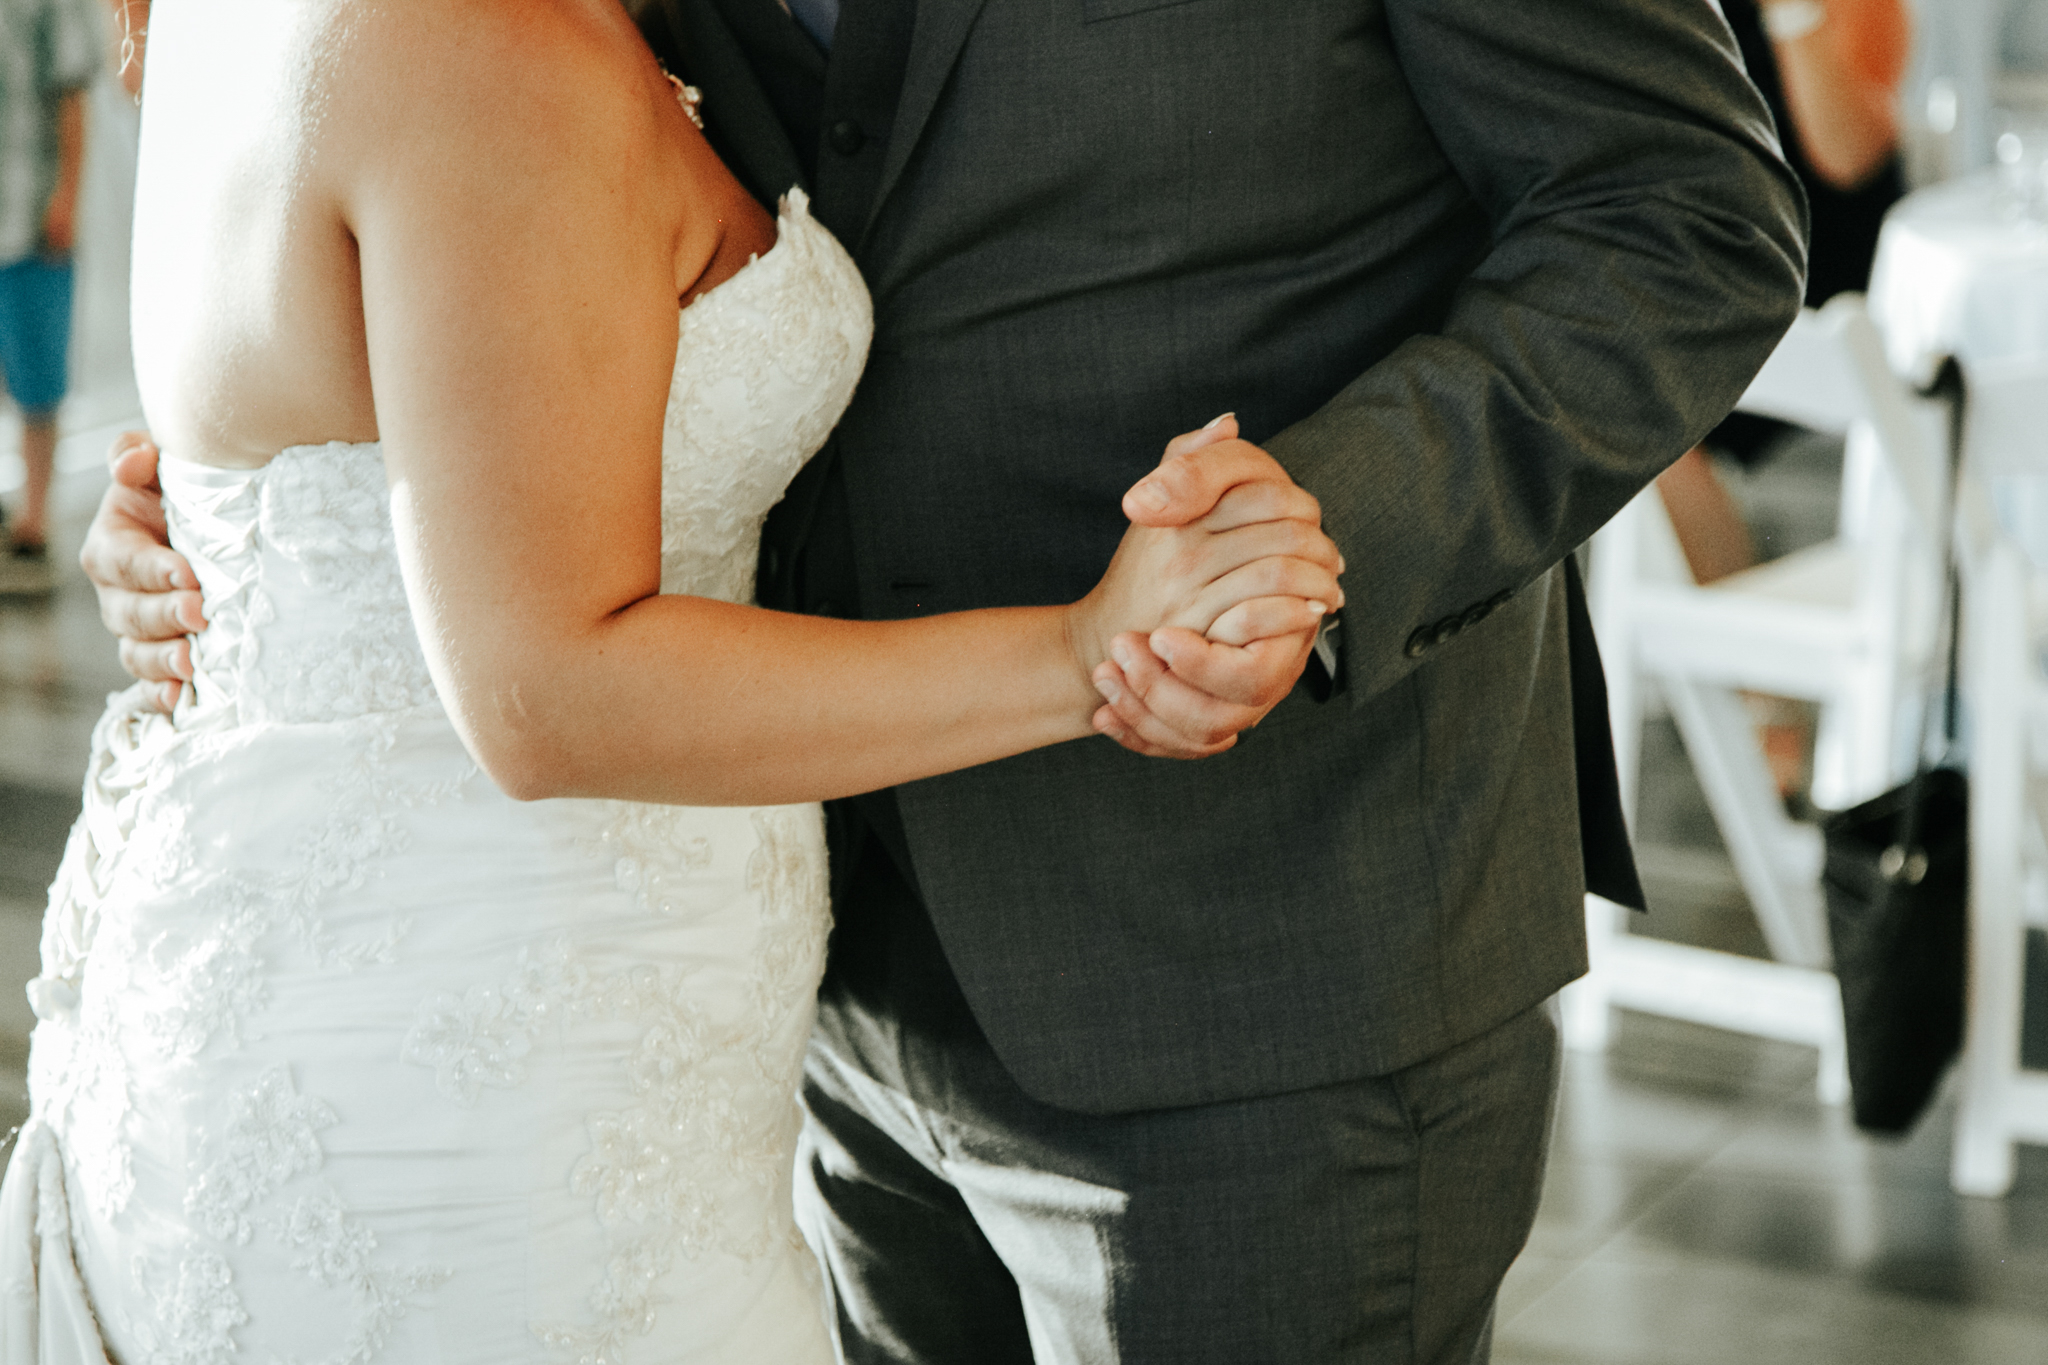 lethbridge-wedding-photographer-love-and-be-loved-photography-trent-danielle-galt-reception-picture-image-photo-205.jpg